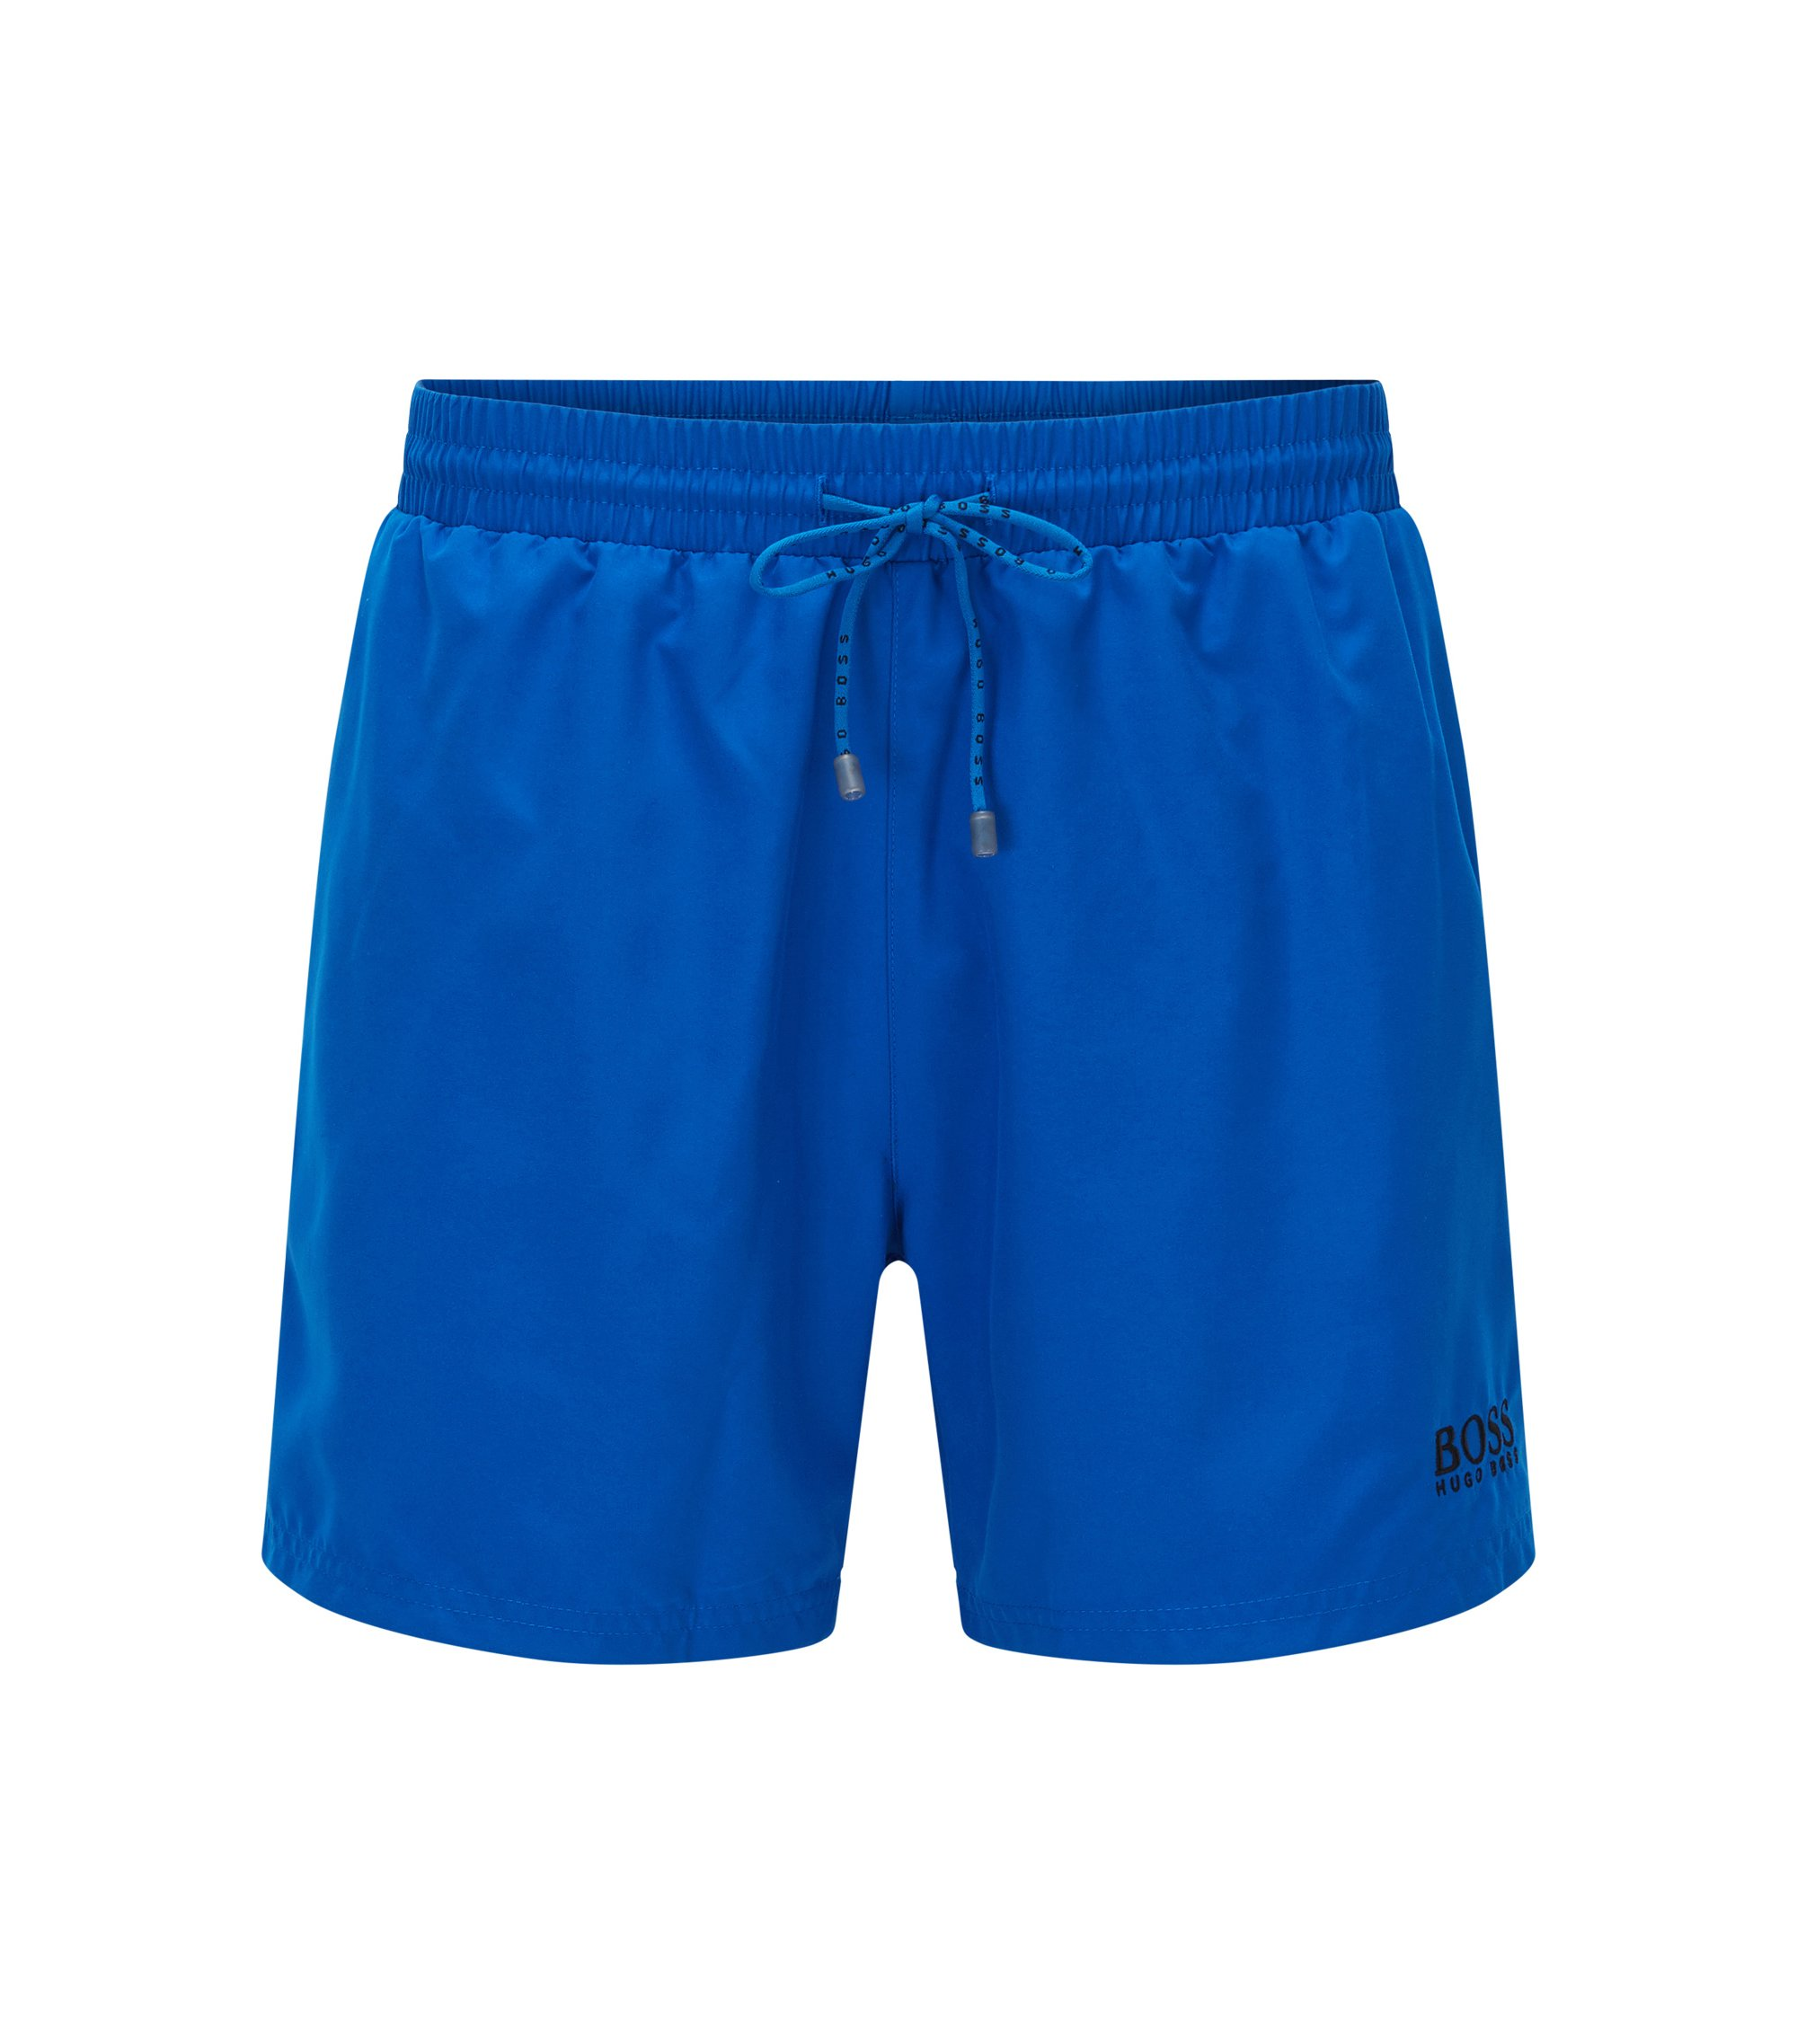 Short-length swim shorts in quick-drying fabric, Blue